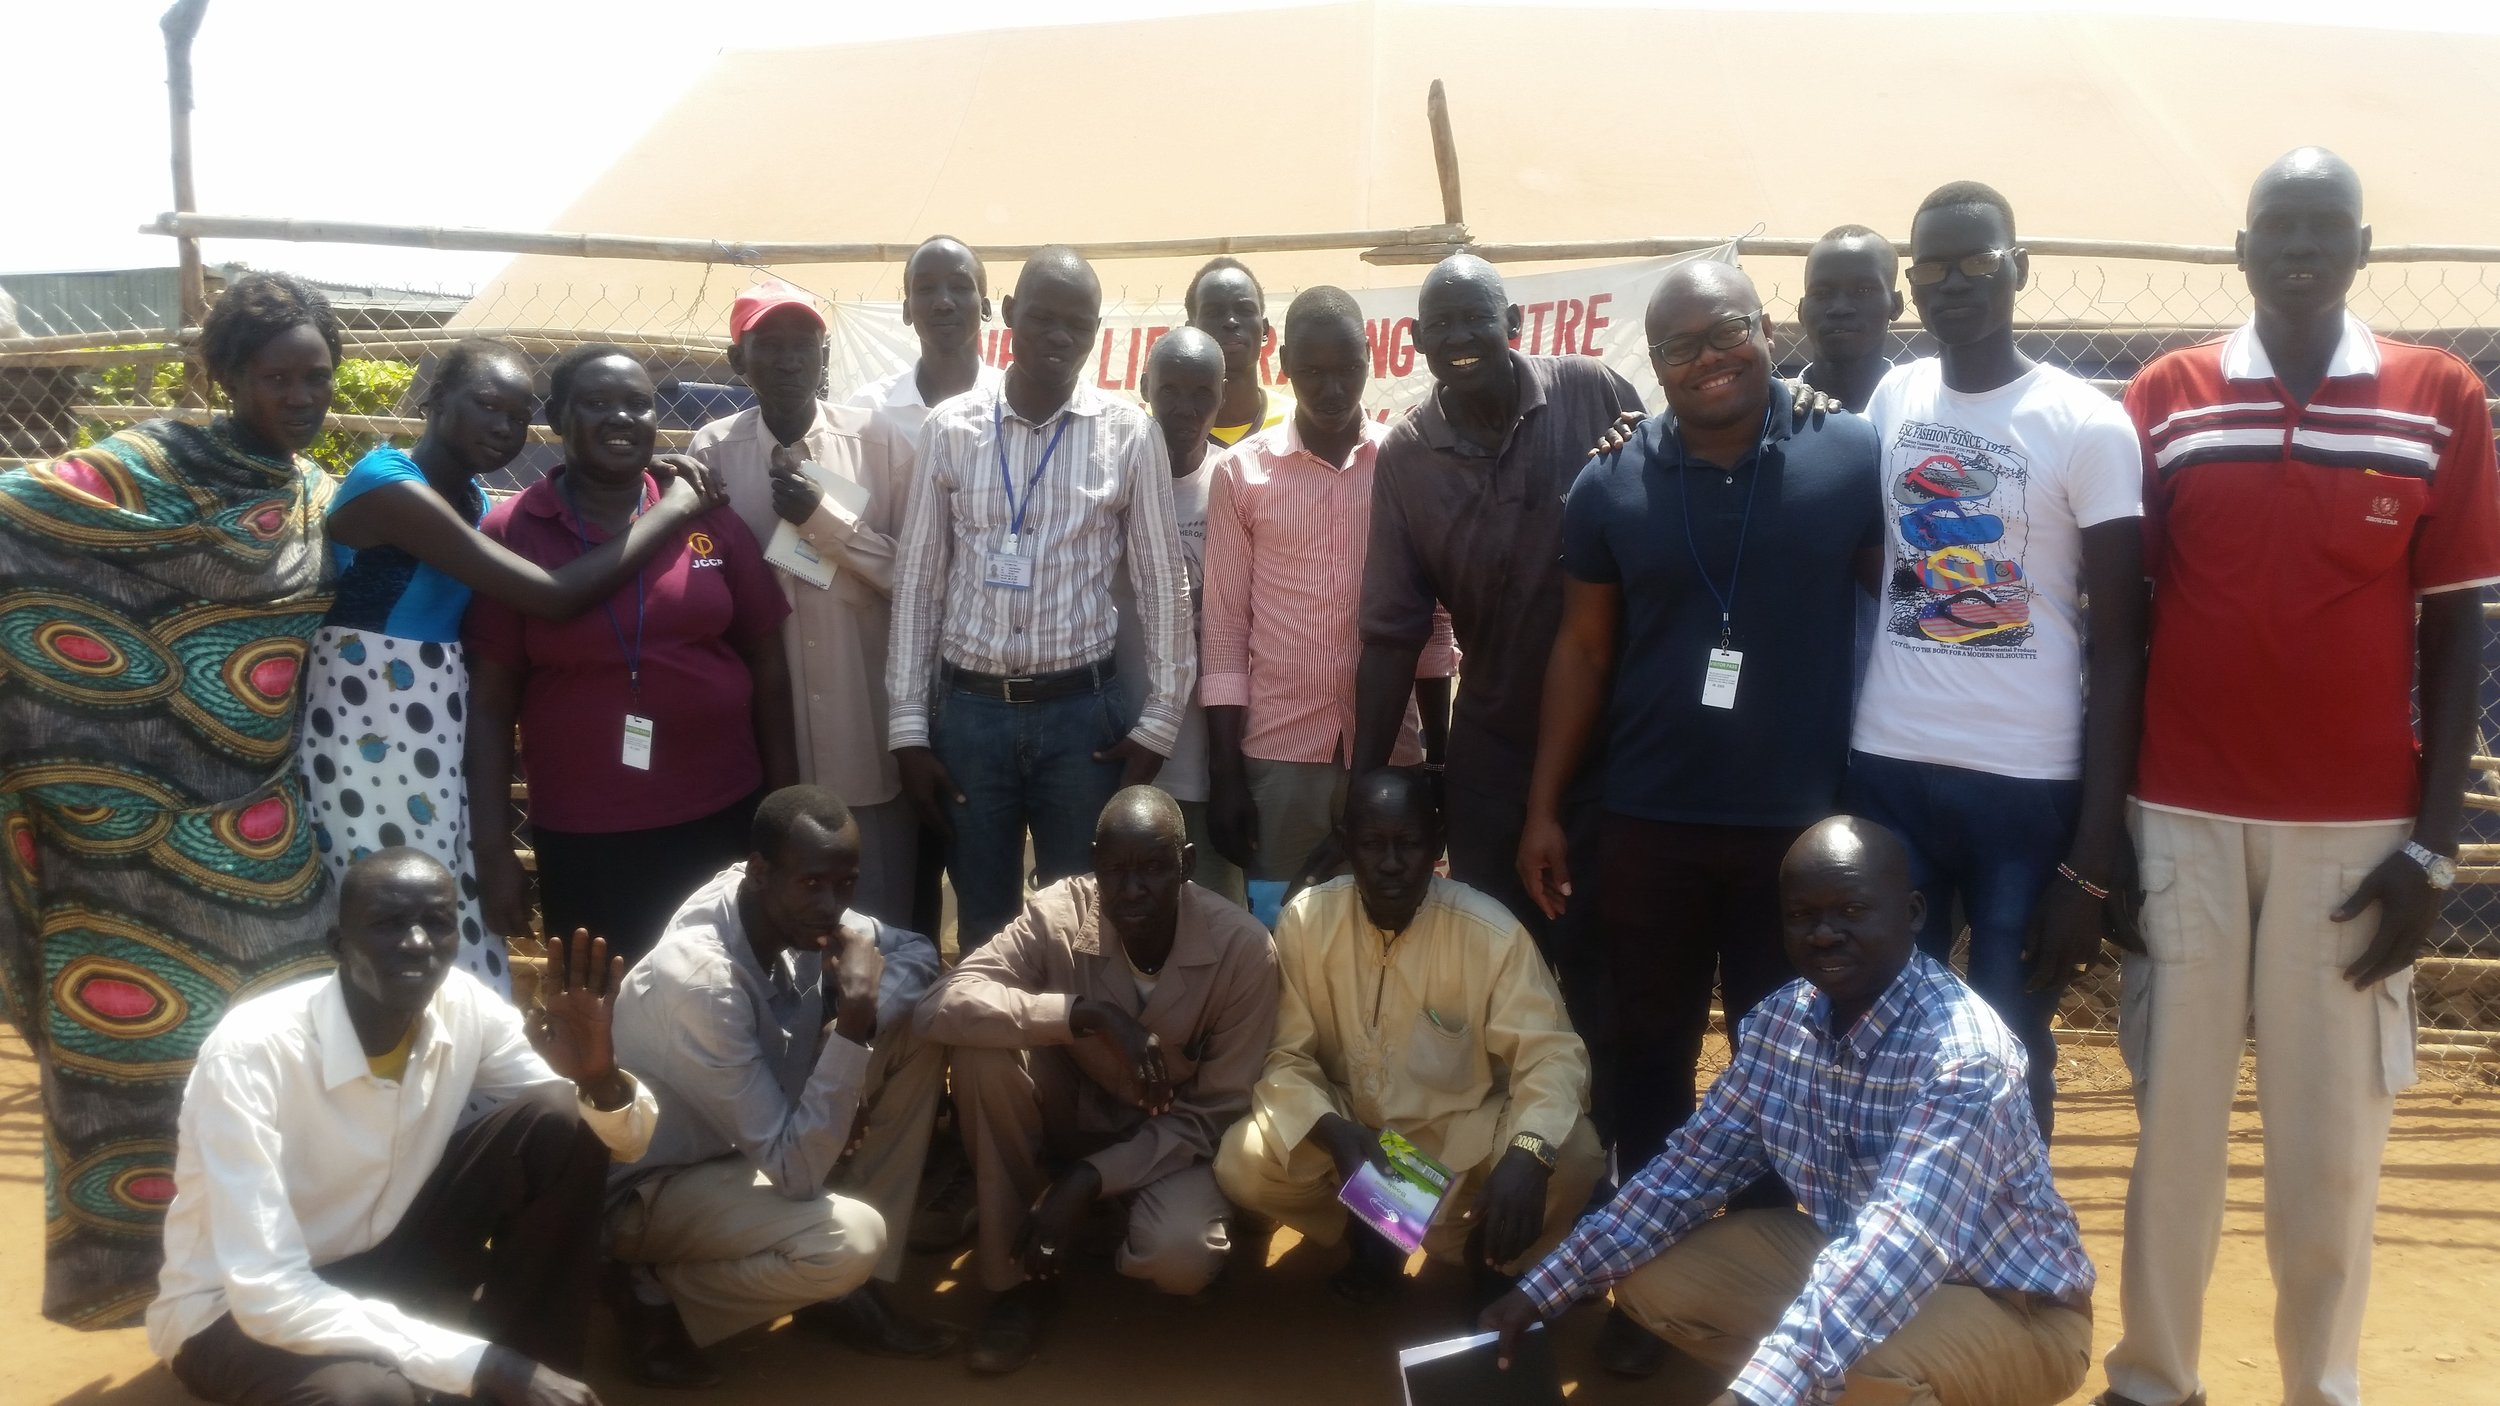 Leadership of the ONAD Peace Club at the UN Protection of Civilians site, in Juba.